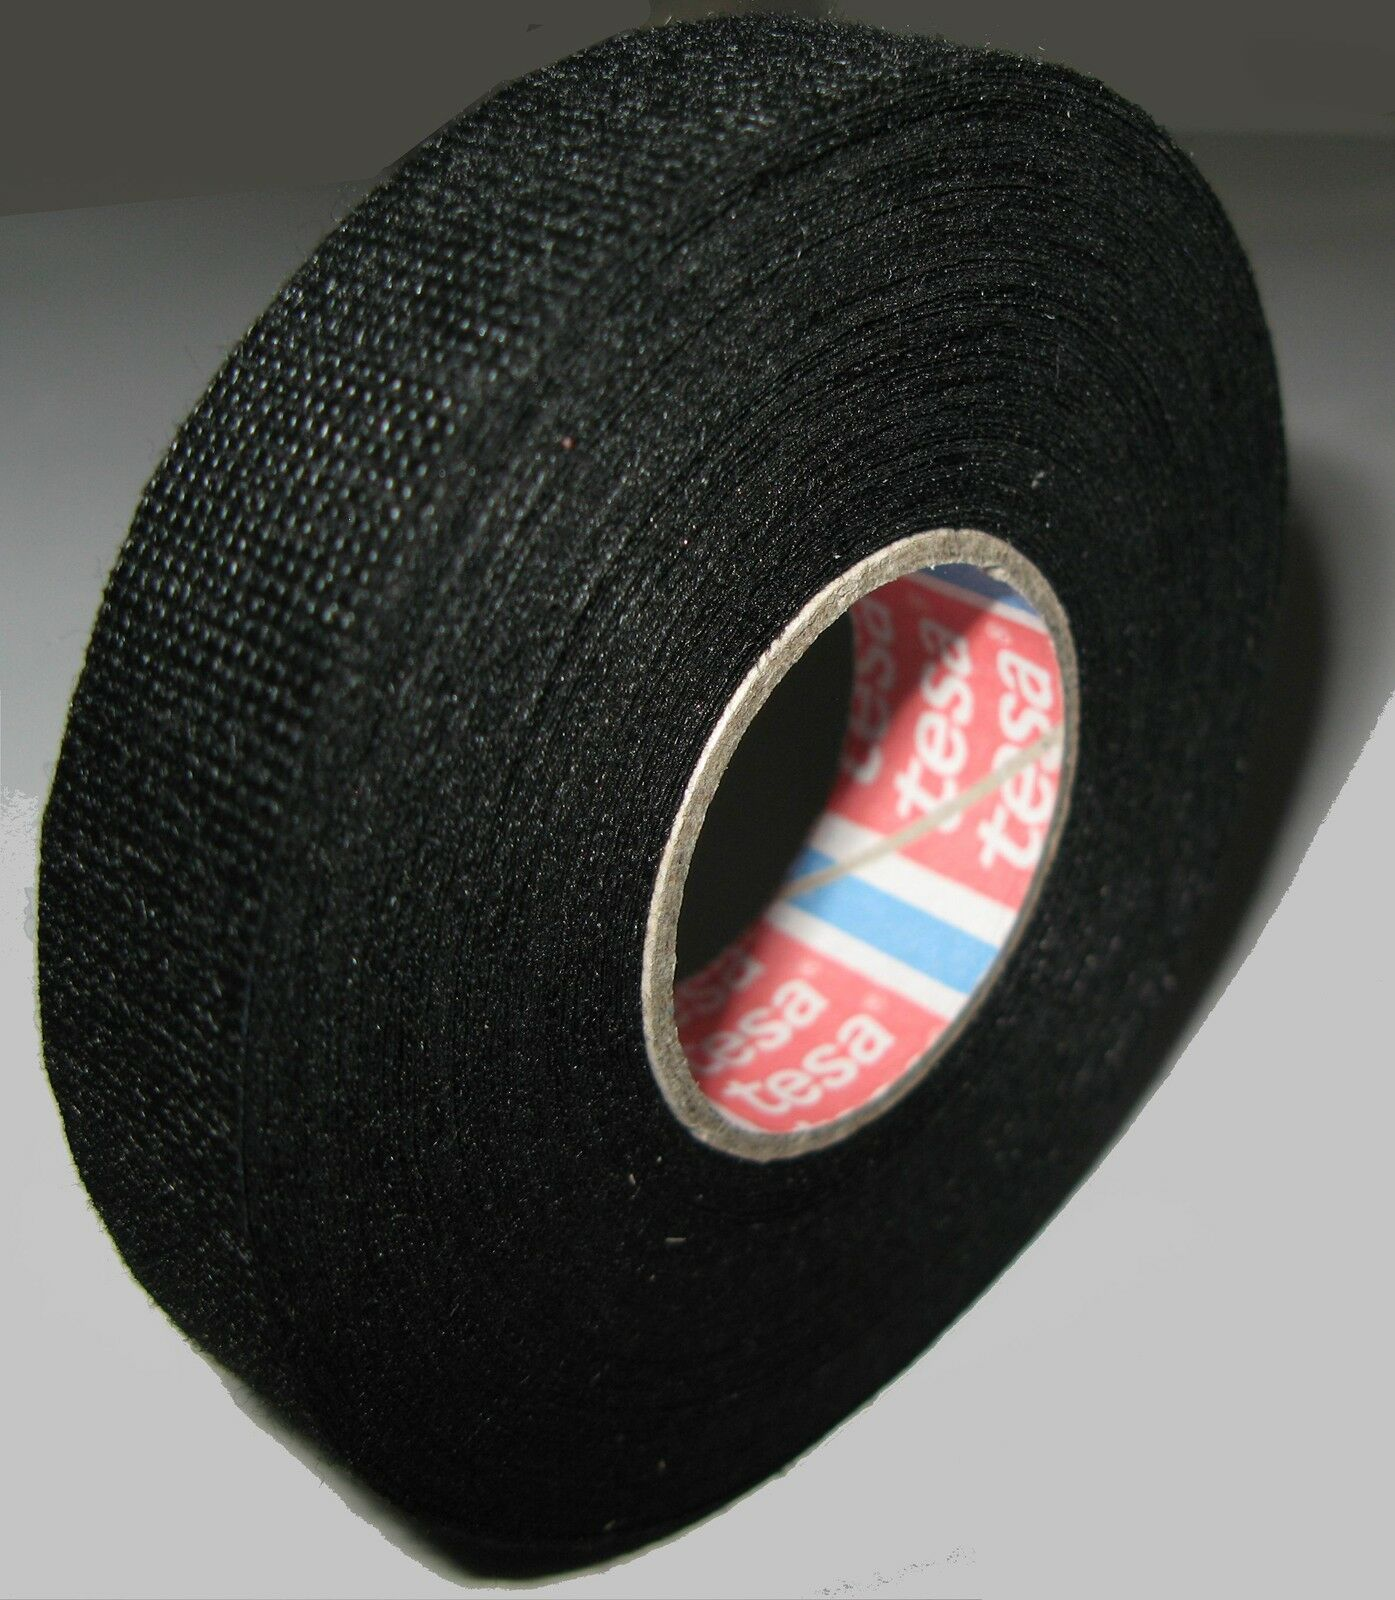 Tesa 51608 25m 19mm Wiring Loom Harness Adhesive Cloth Fabric Wire Tape 1 Of 1free Shipping See More